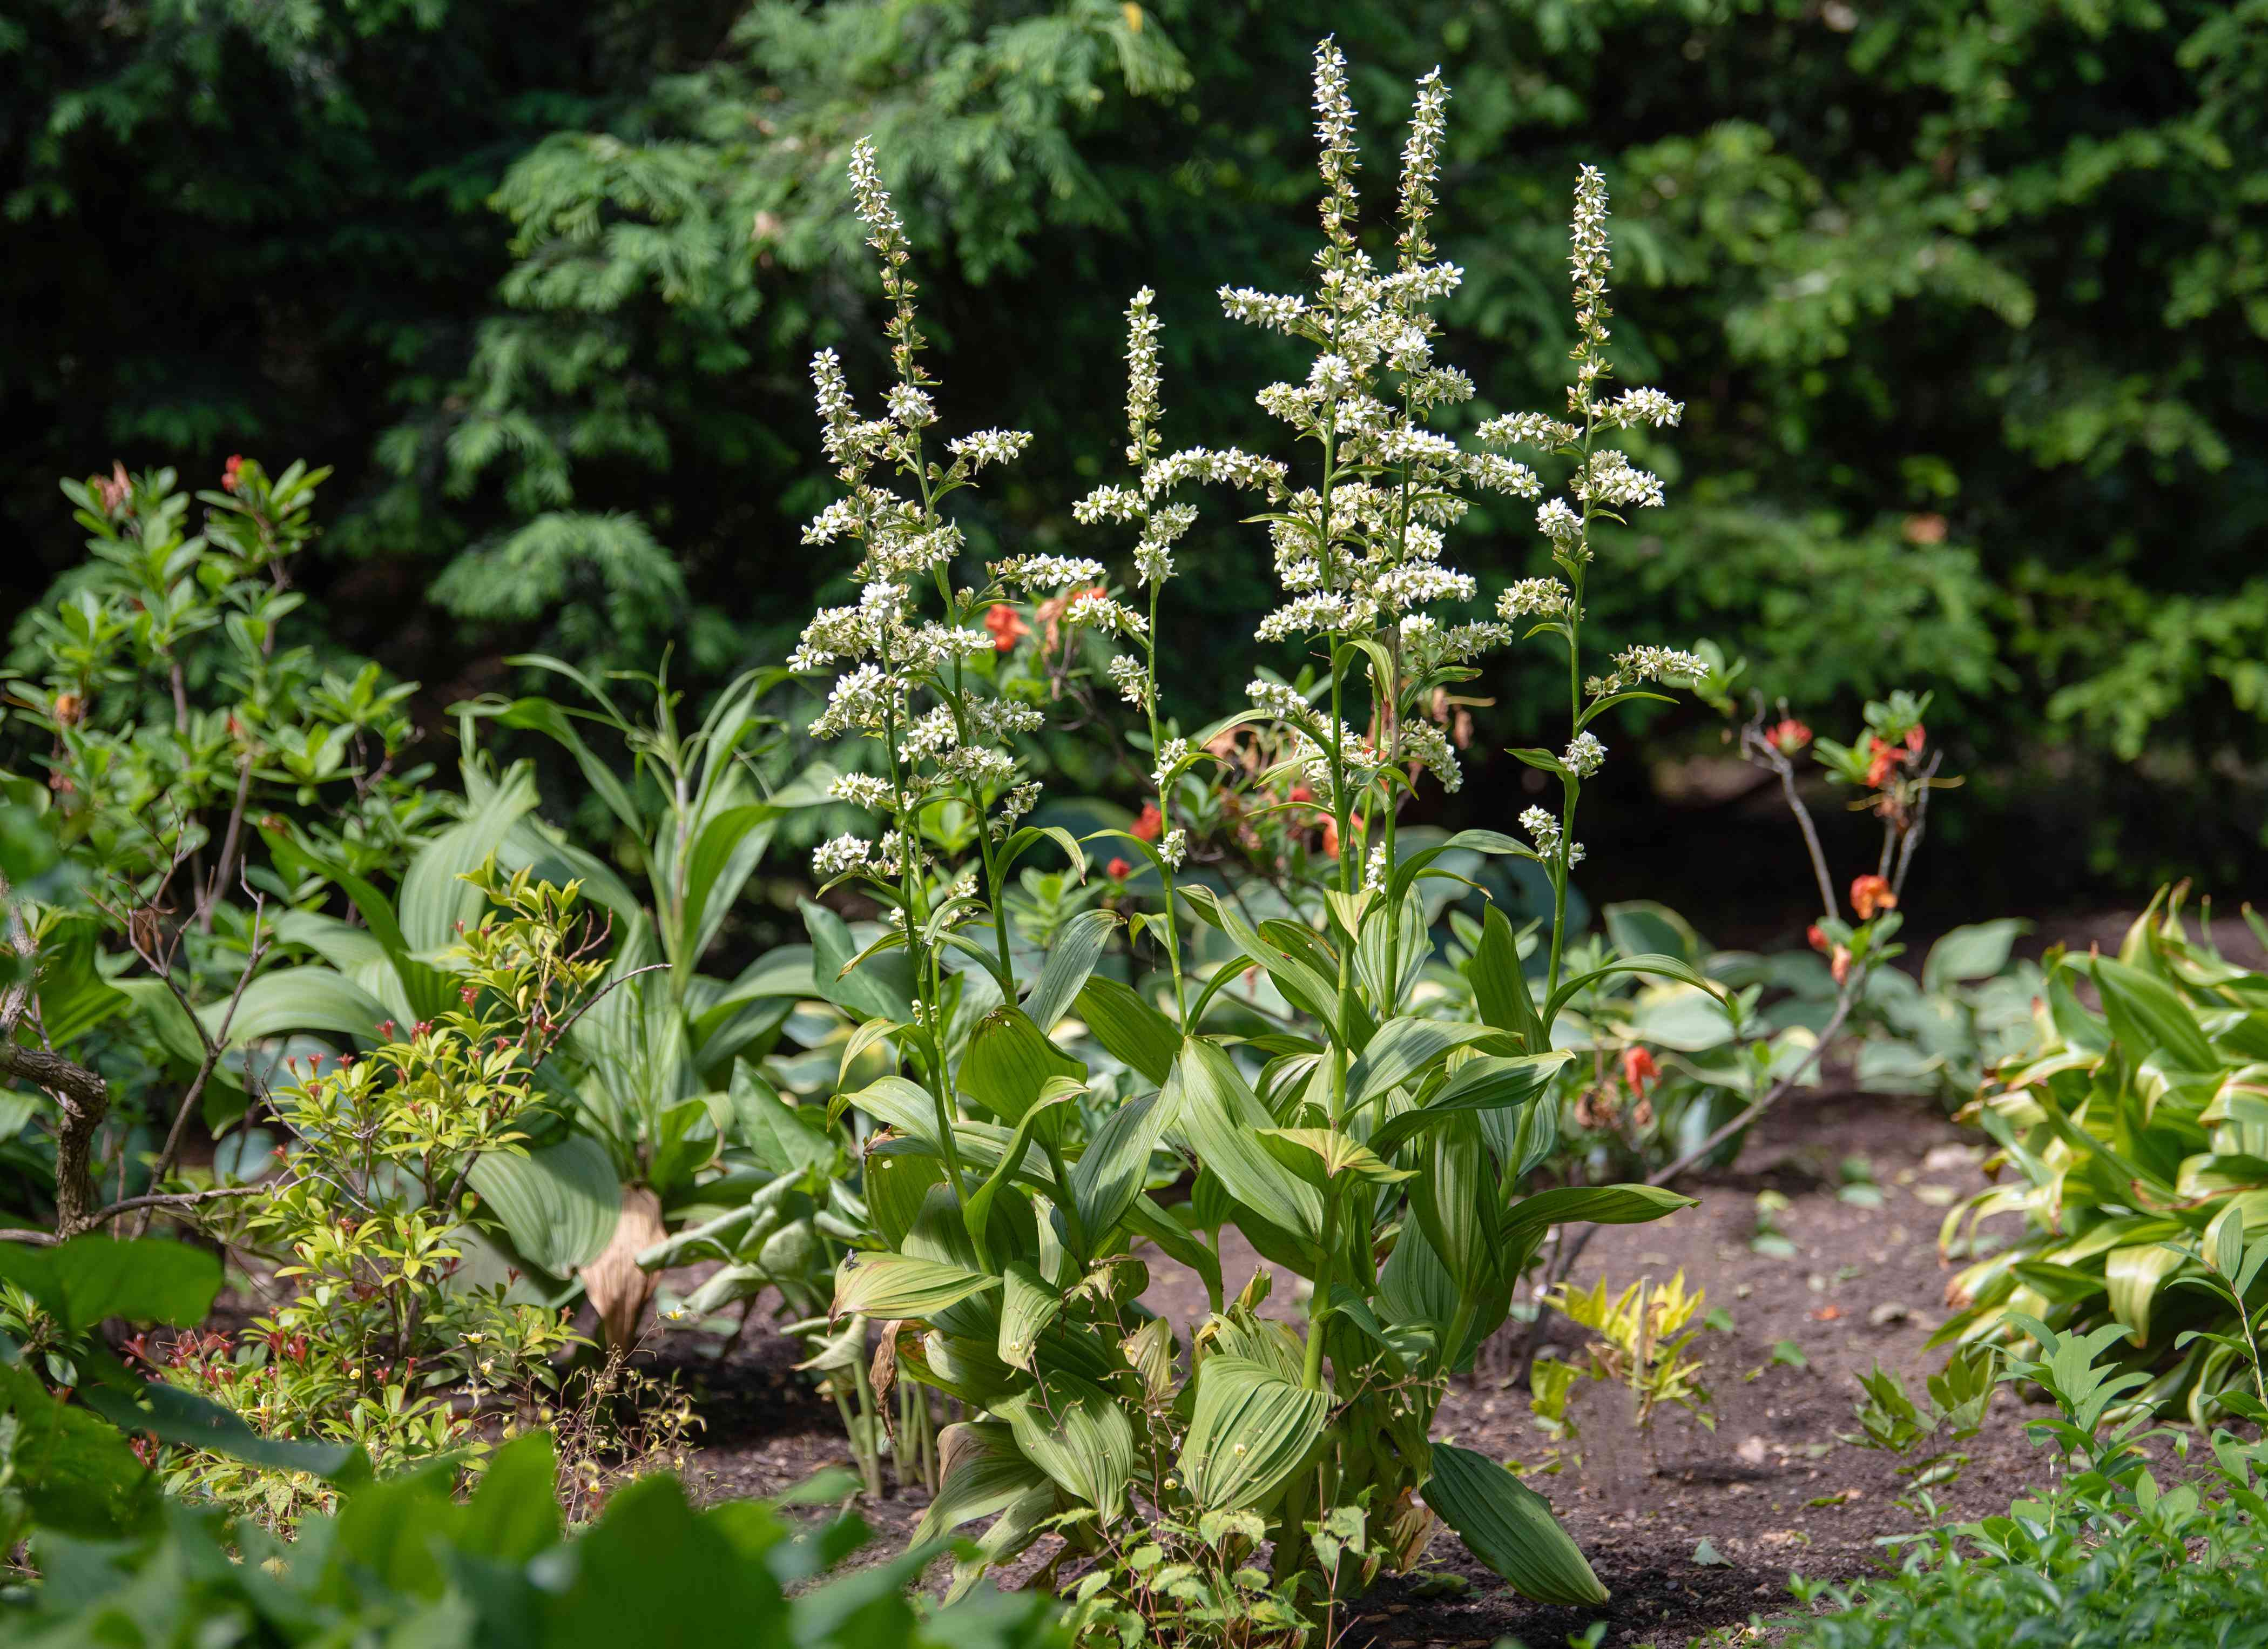 False hellebore plants with tall thin stems and white flower panicles in garden